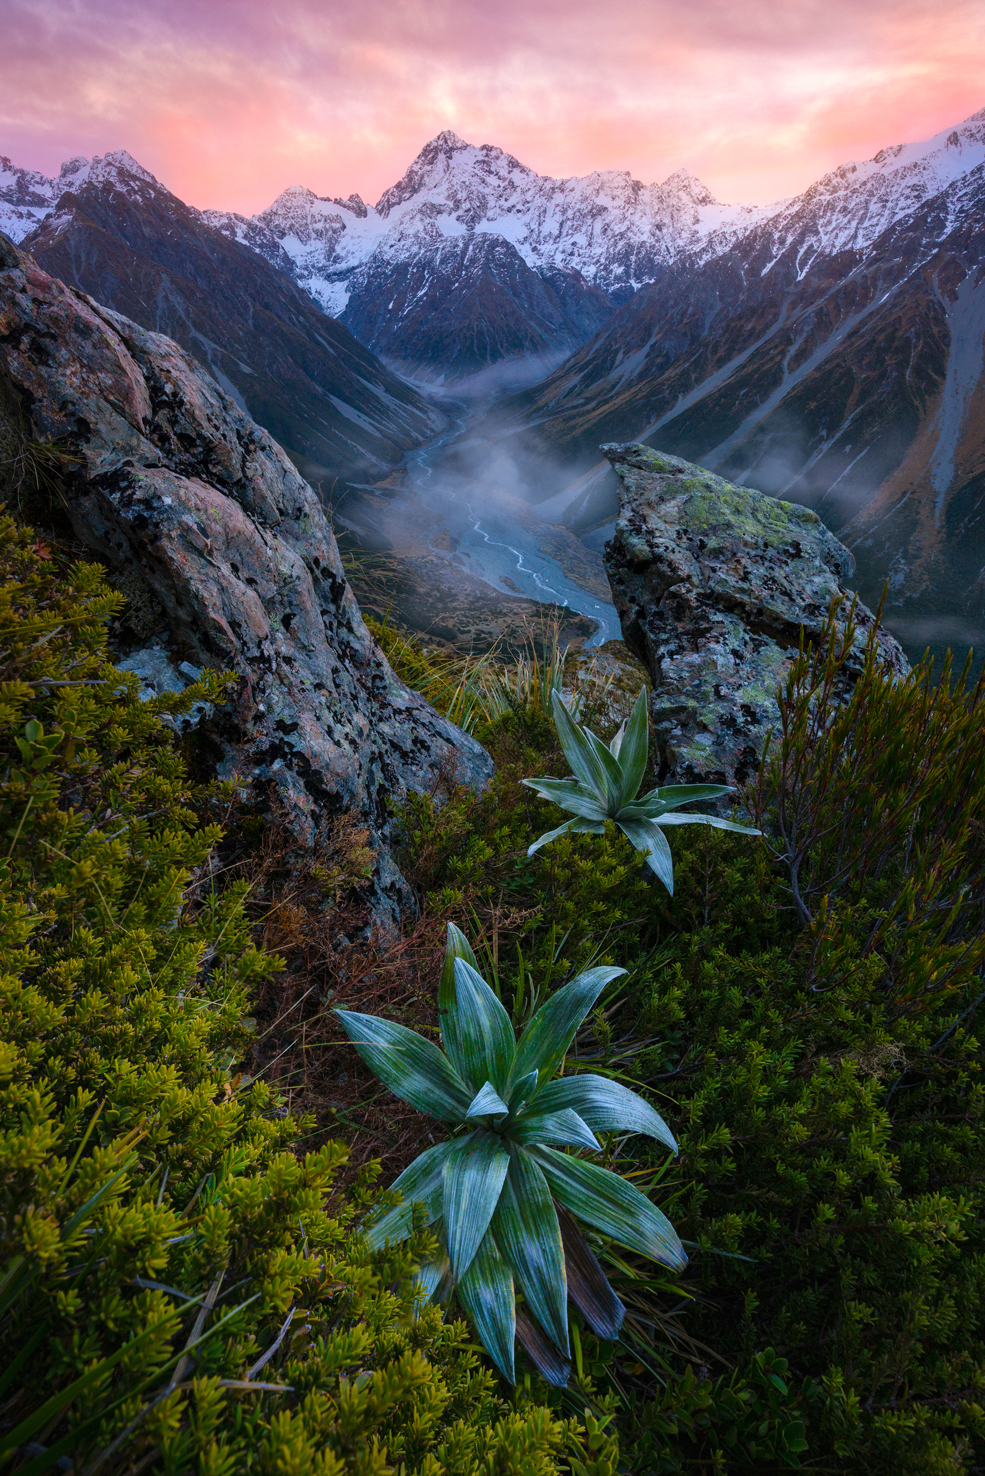 William Patino - Landscape Photographer -  www.williampatino.com